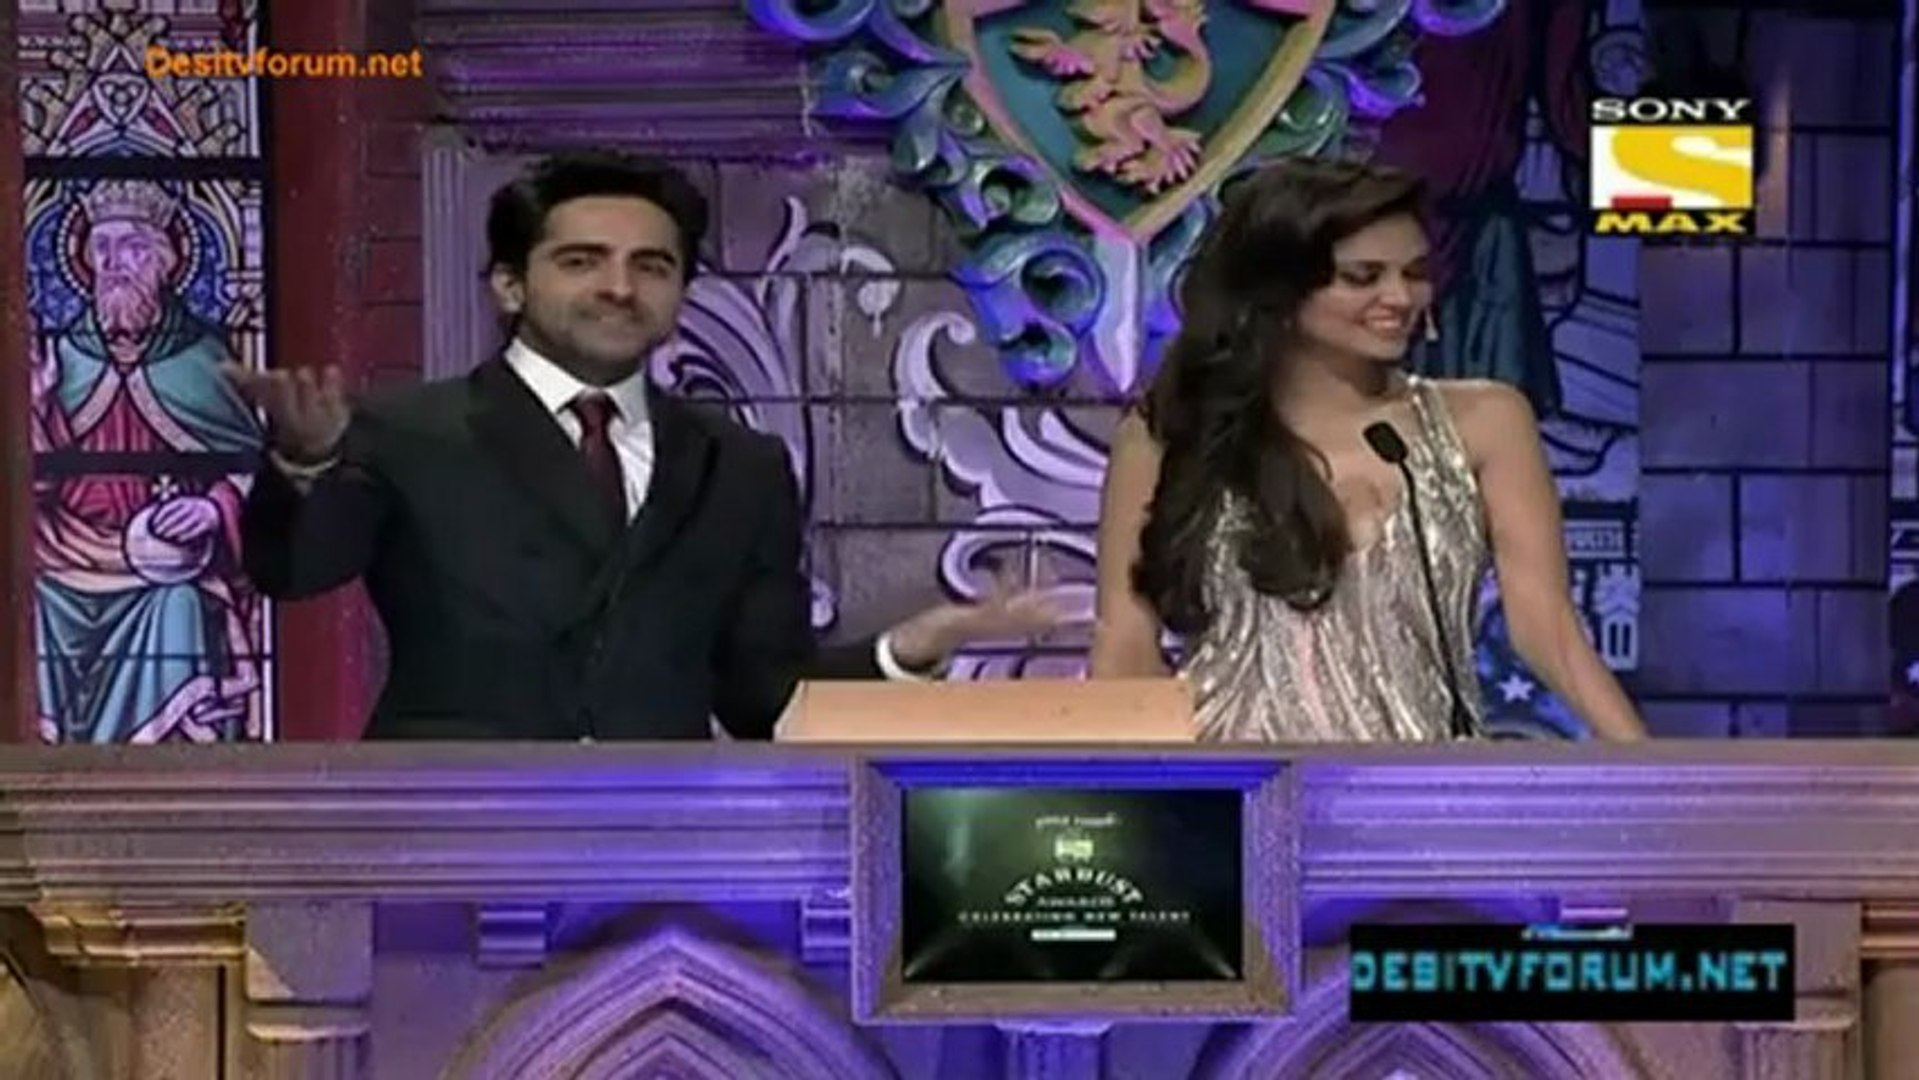 Max Stardust Awards 2013 10th February 2013 Video Watch Online 720p HD Pt4